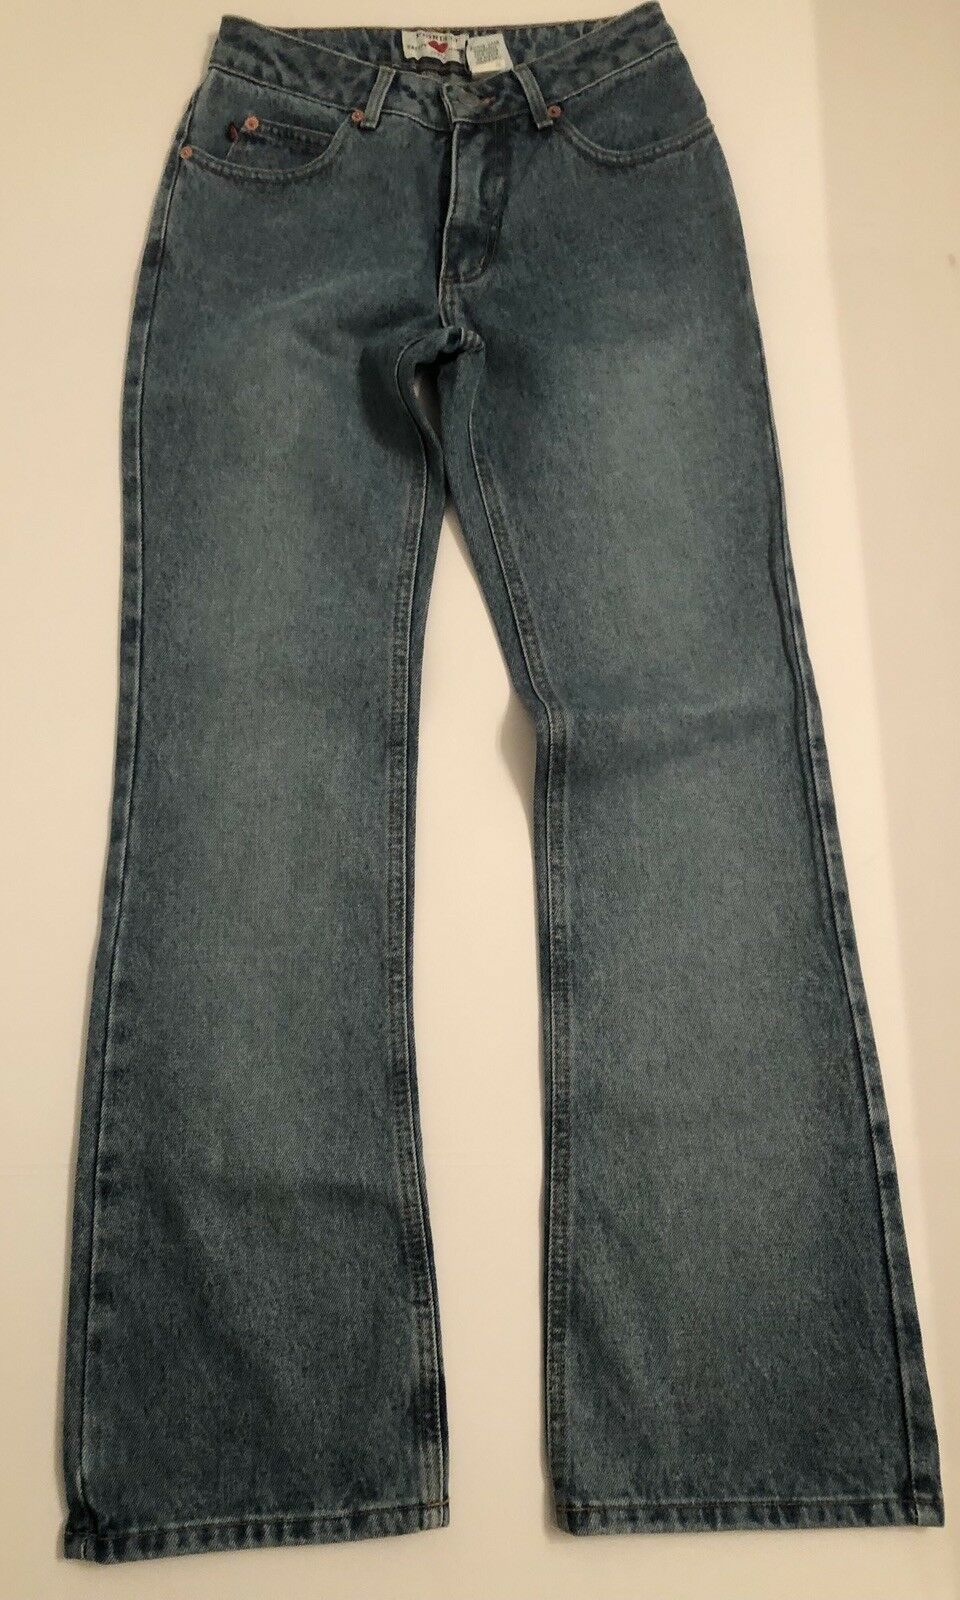 Fiorucci Women's Jeans Vintage Size 3 Waist 25  Inseam 29.5  New with Tag